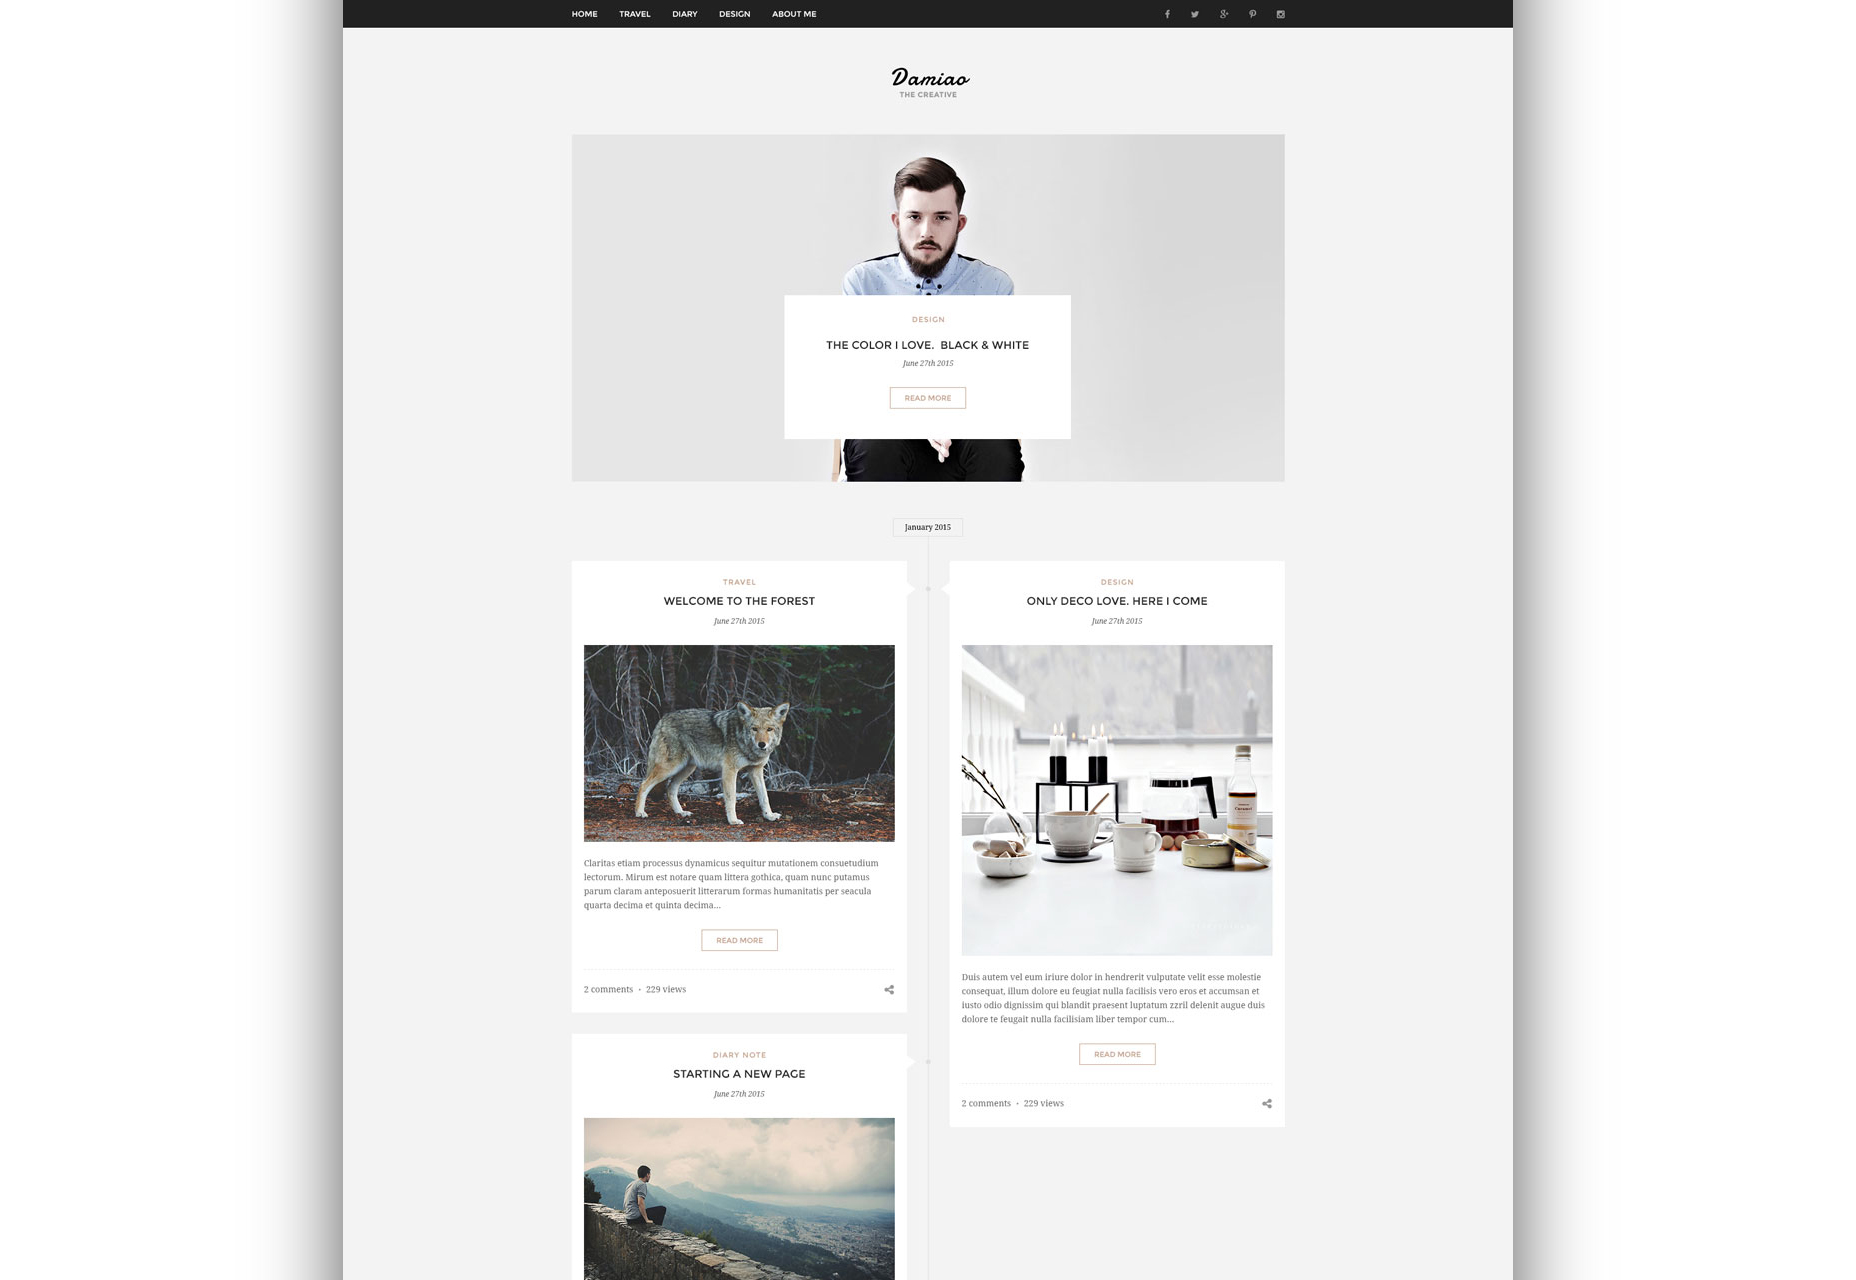 Damiao: Clean and Minimal Multi-layout PSD Template